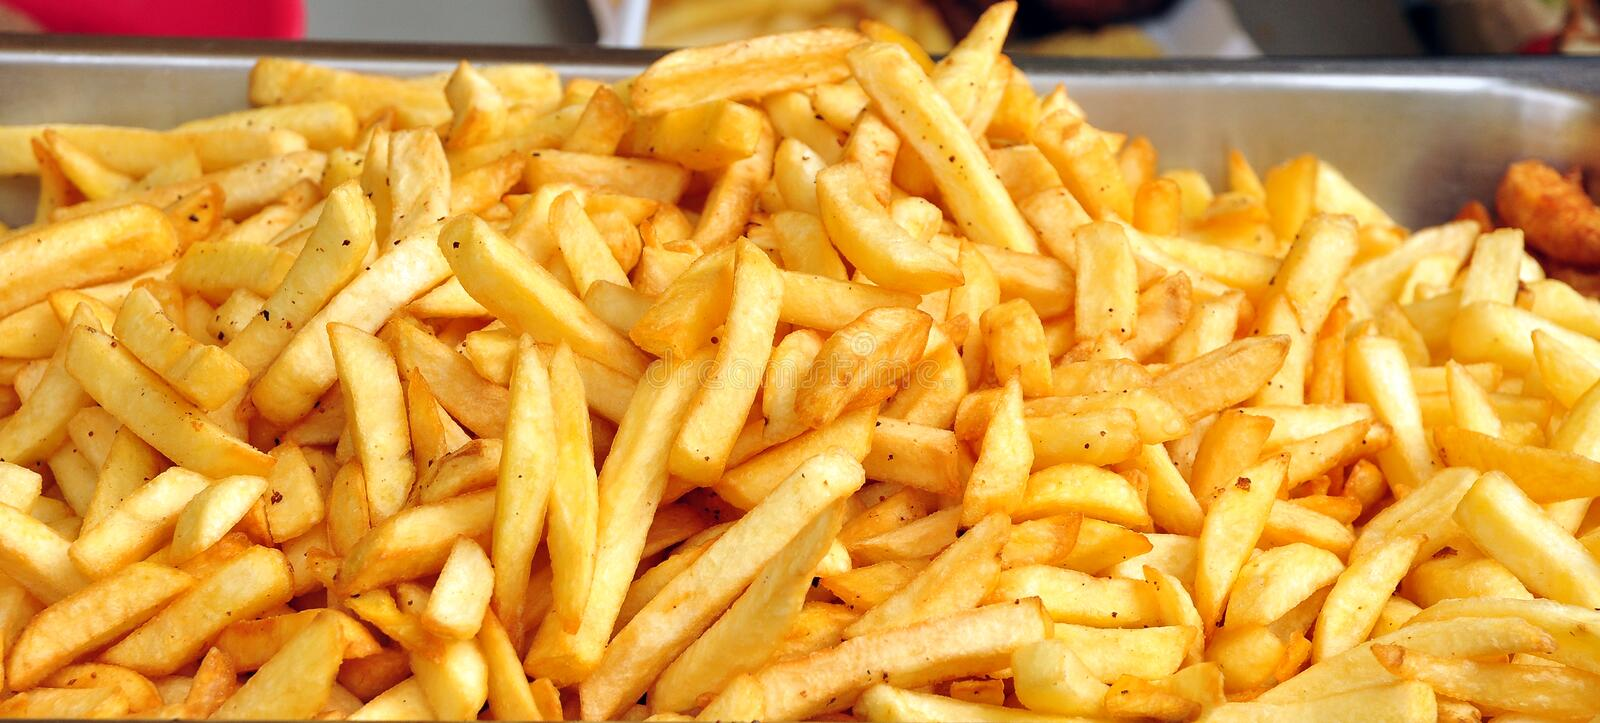 Download French fries stock photo. Image of diet, fried, delicious - 26625632